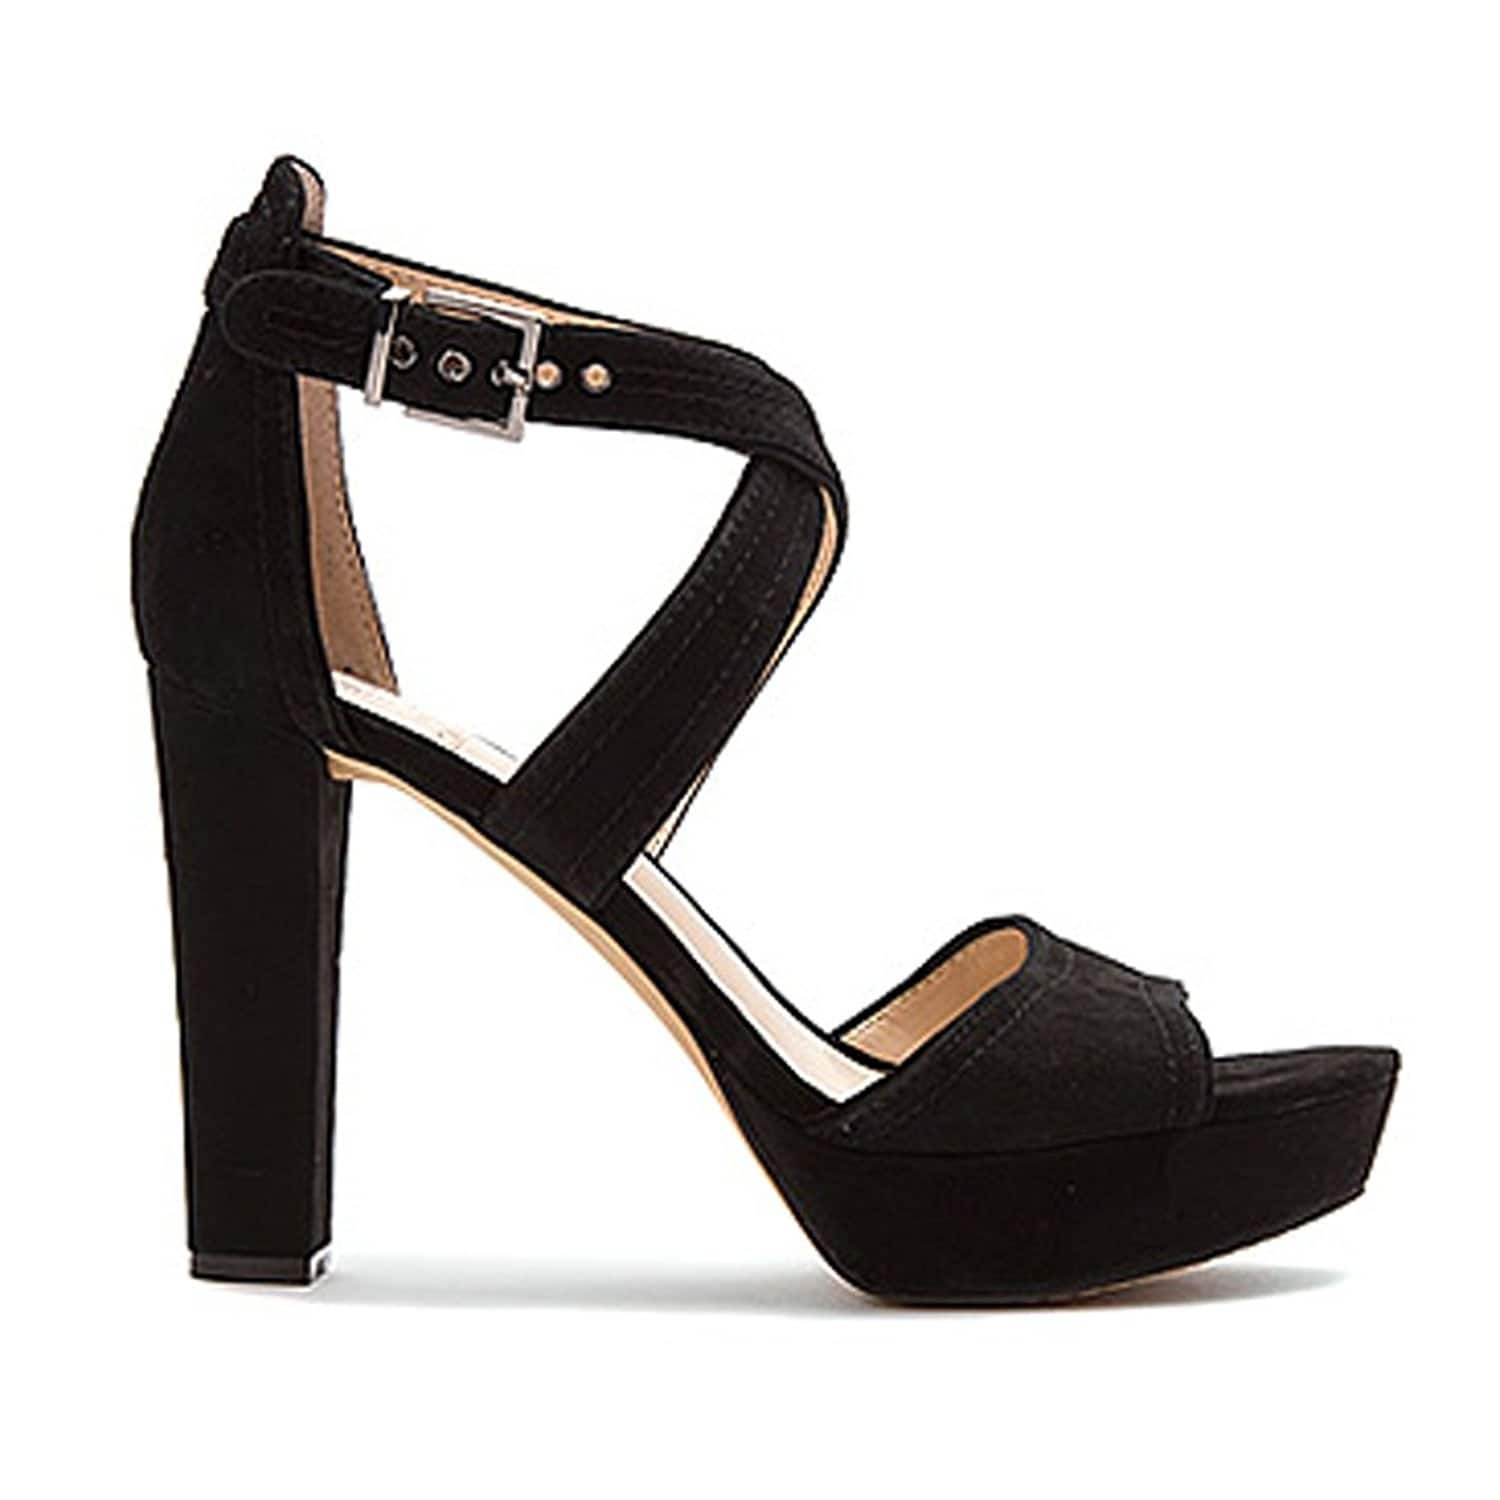 54a80f376ef Shop Vince Camuto Womens Shayla Leather Open Toe Special Occasion Platform  Sandals - Free Shipping Today - Overstock - 15287492